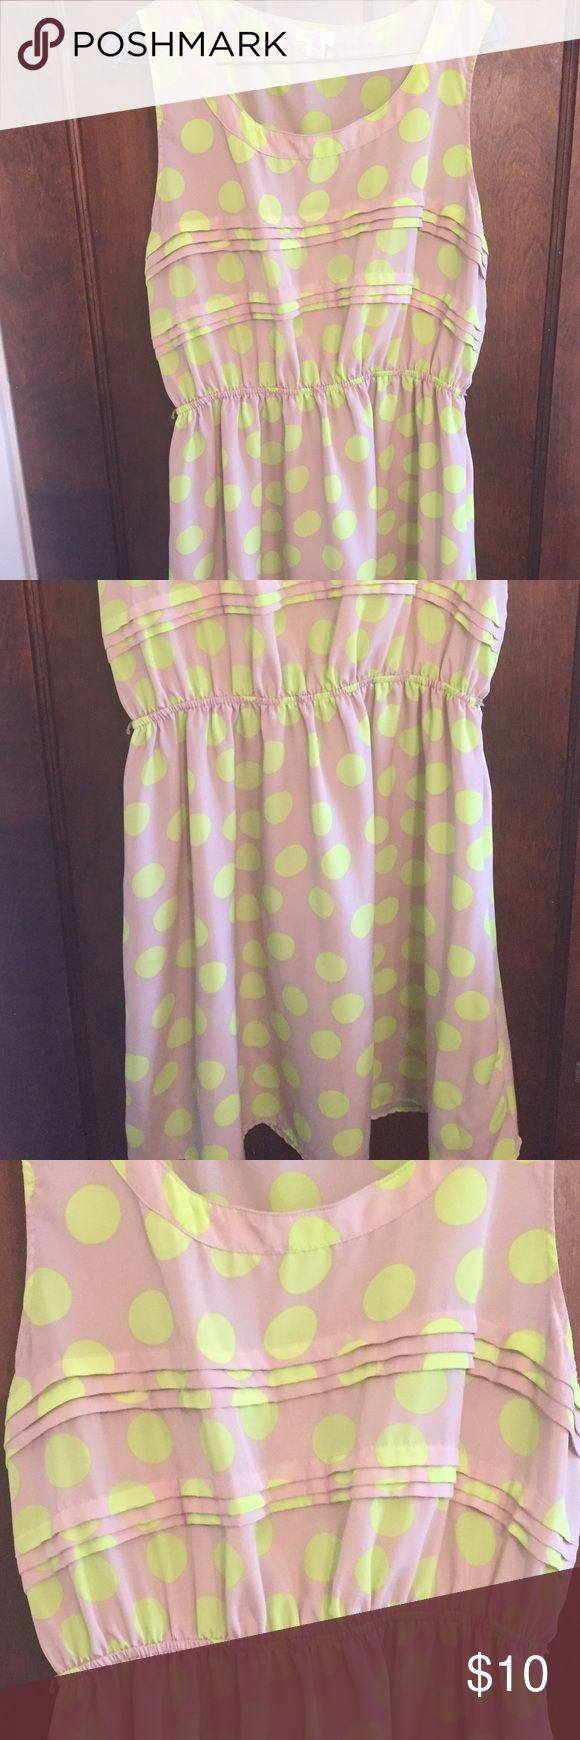 Fun taupe and neon yellow dress Taupe dress with  neon yellow dress polka dots. Neon yellow thin belt included target Dresses Midi